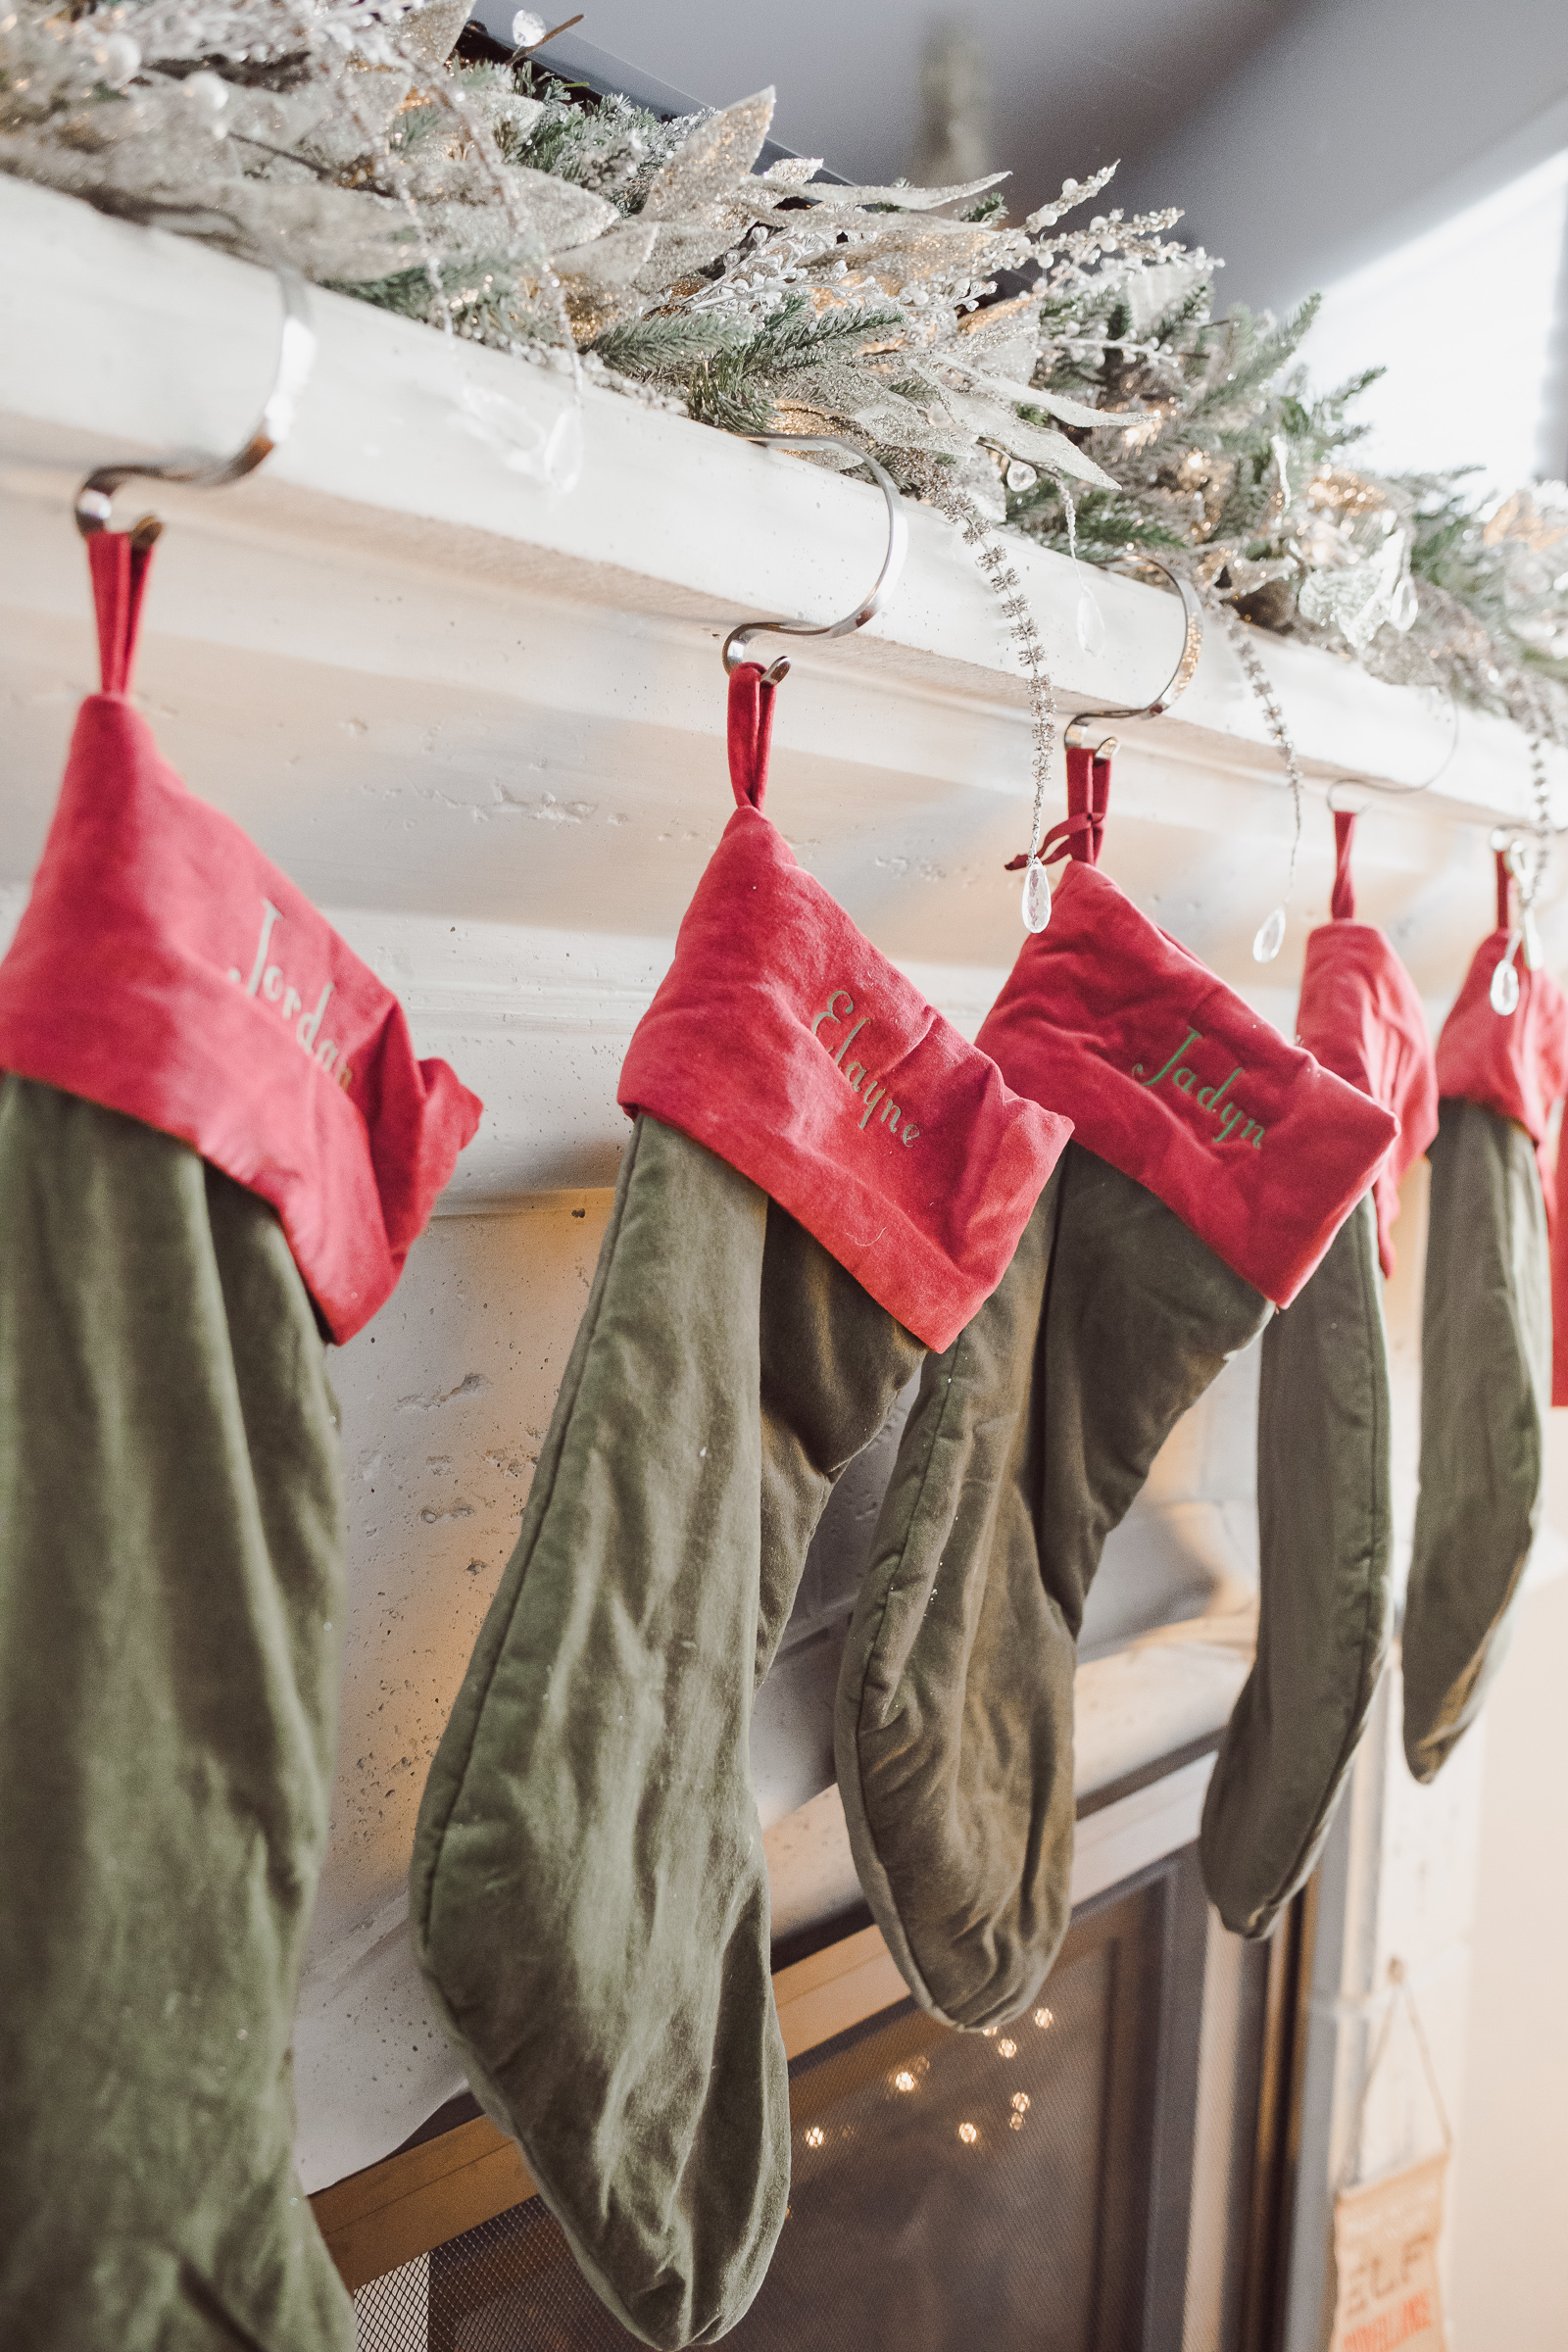 Houston lifestyle blogger Uptown with Elly Brown shares her Pottery Barn Velvet Christmas stockings above her fireplace